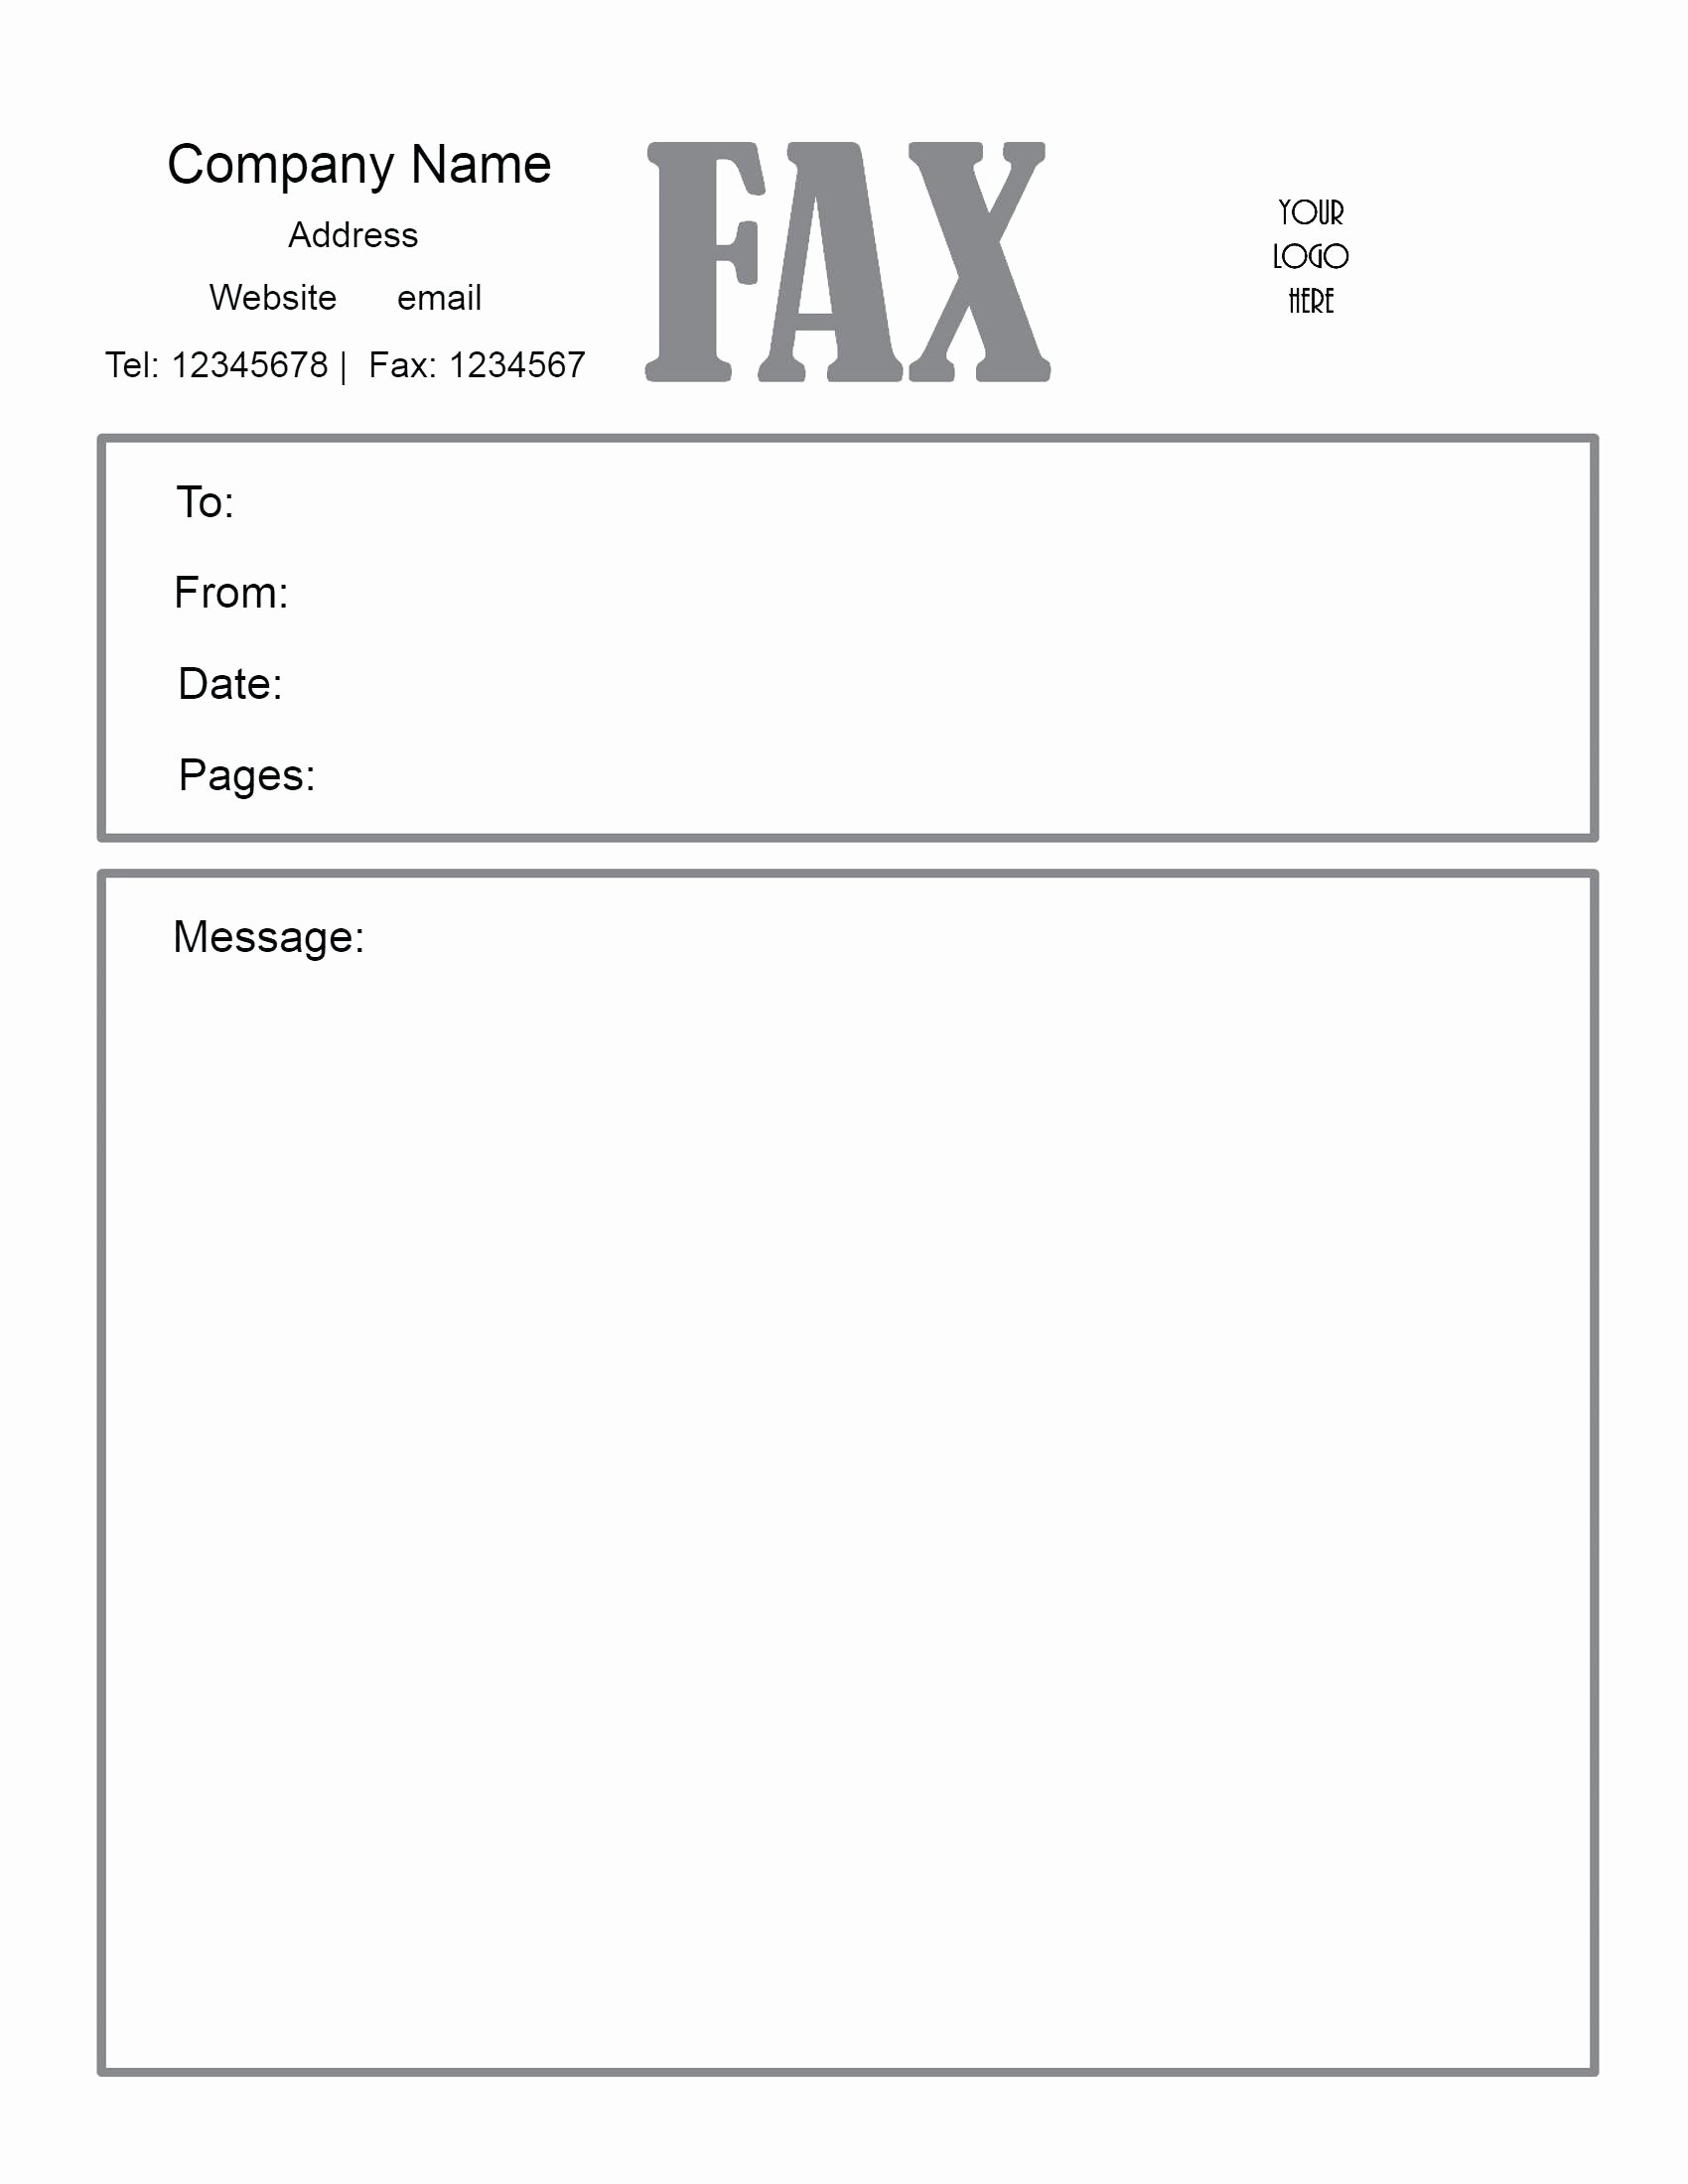 Cover Letter for A Fax Fresh Fax Cover Sheet Pdf Free Download